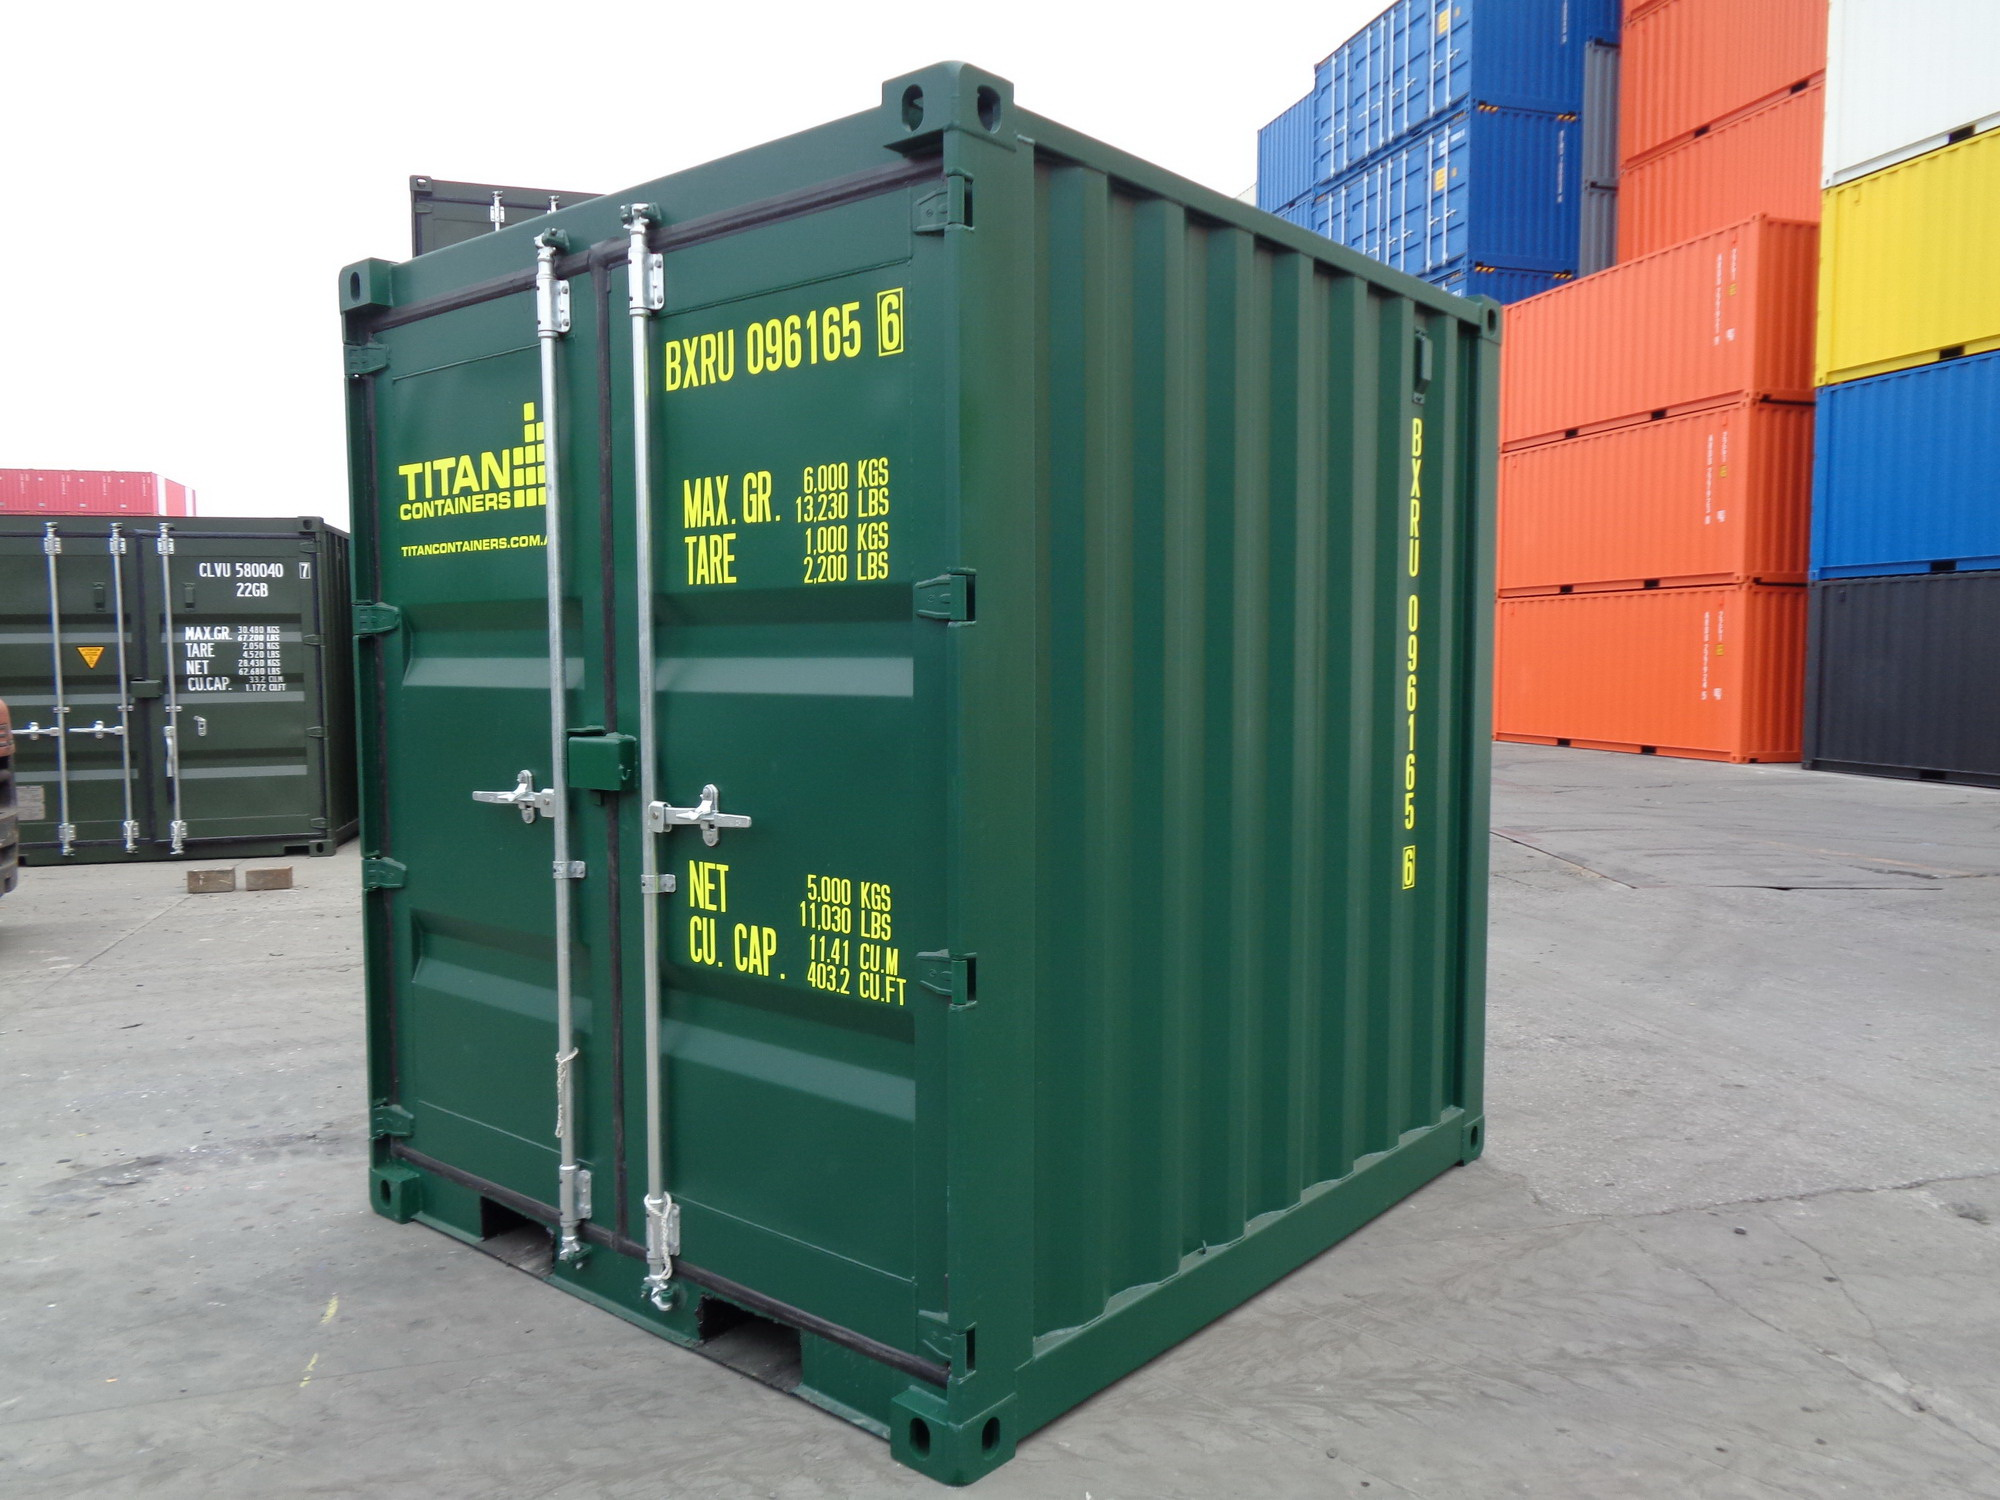 New green 8 container - extra high